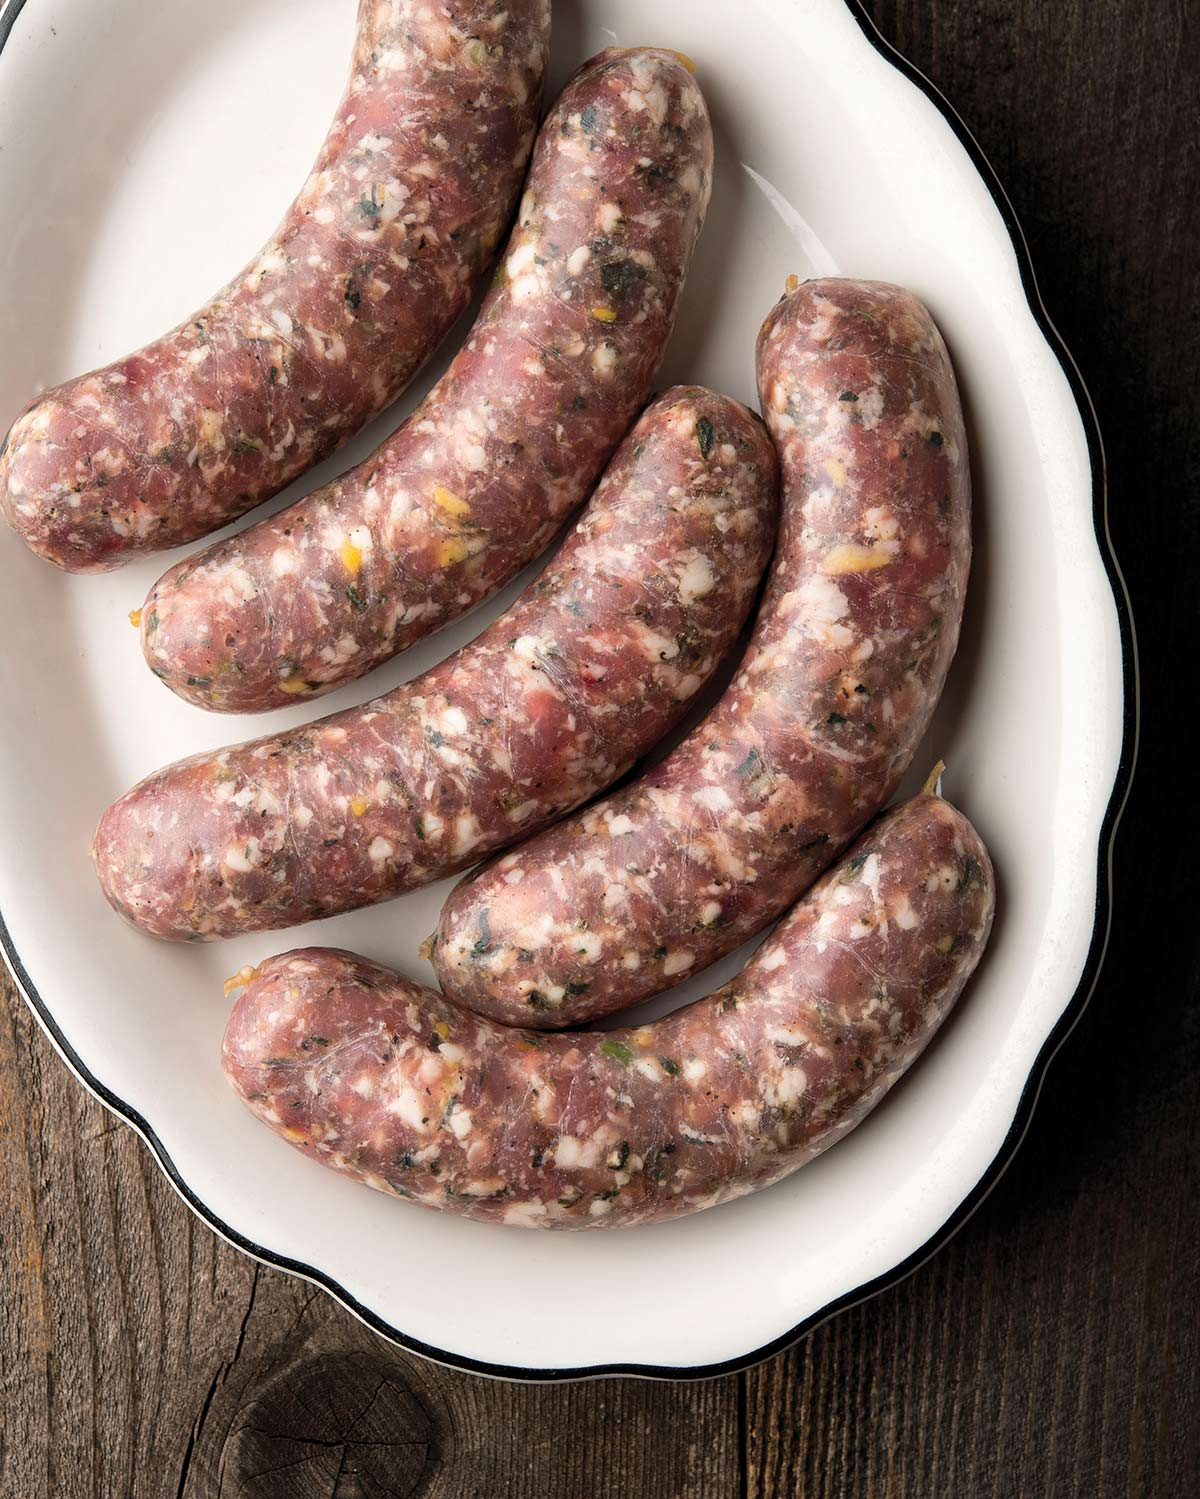 A platter of garlic sausages made from venison and pork